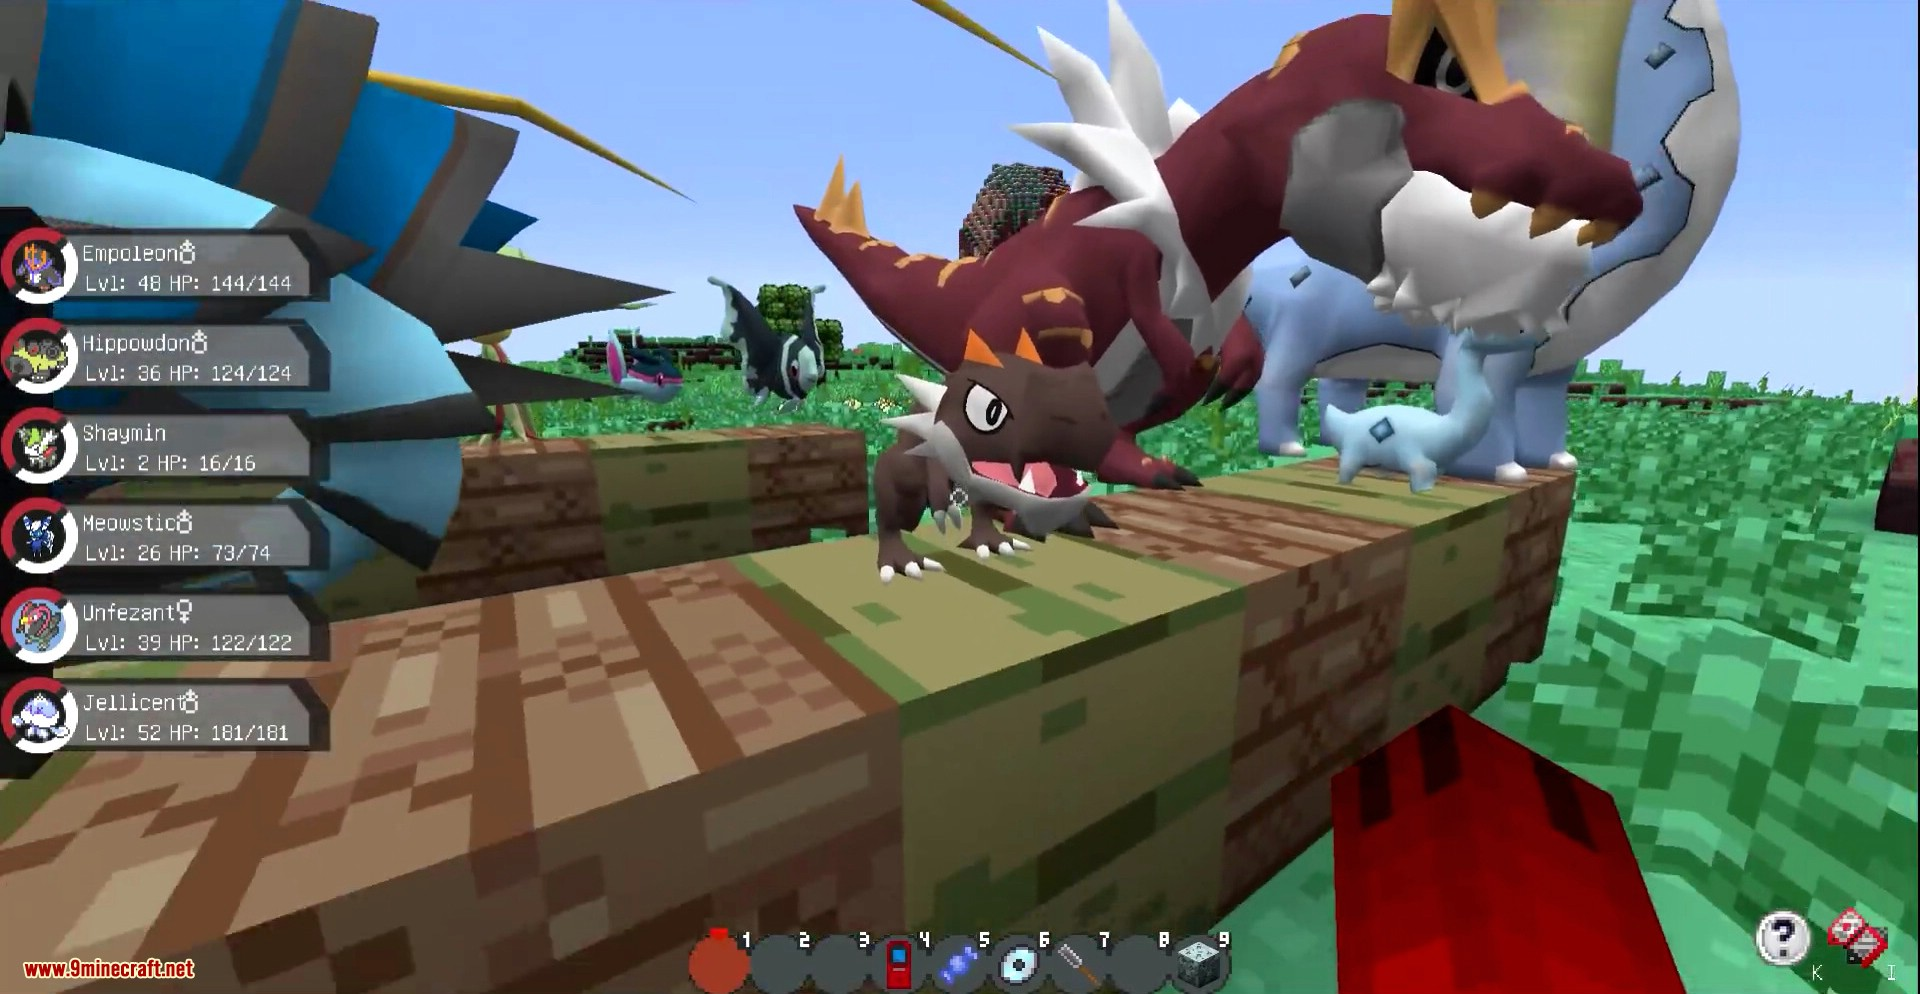 Pixelmon Mod Screenshots New 40